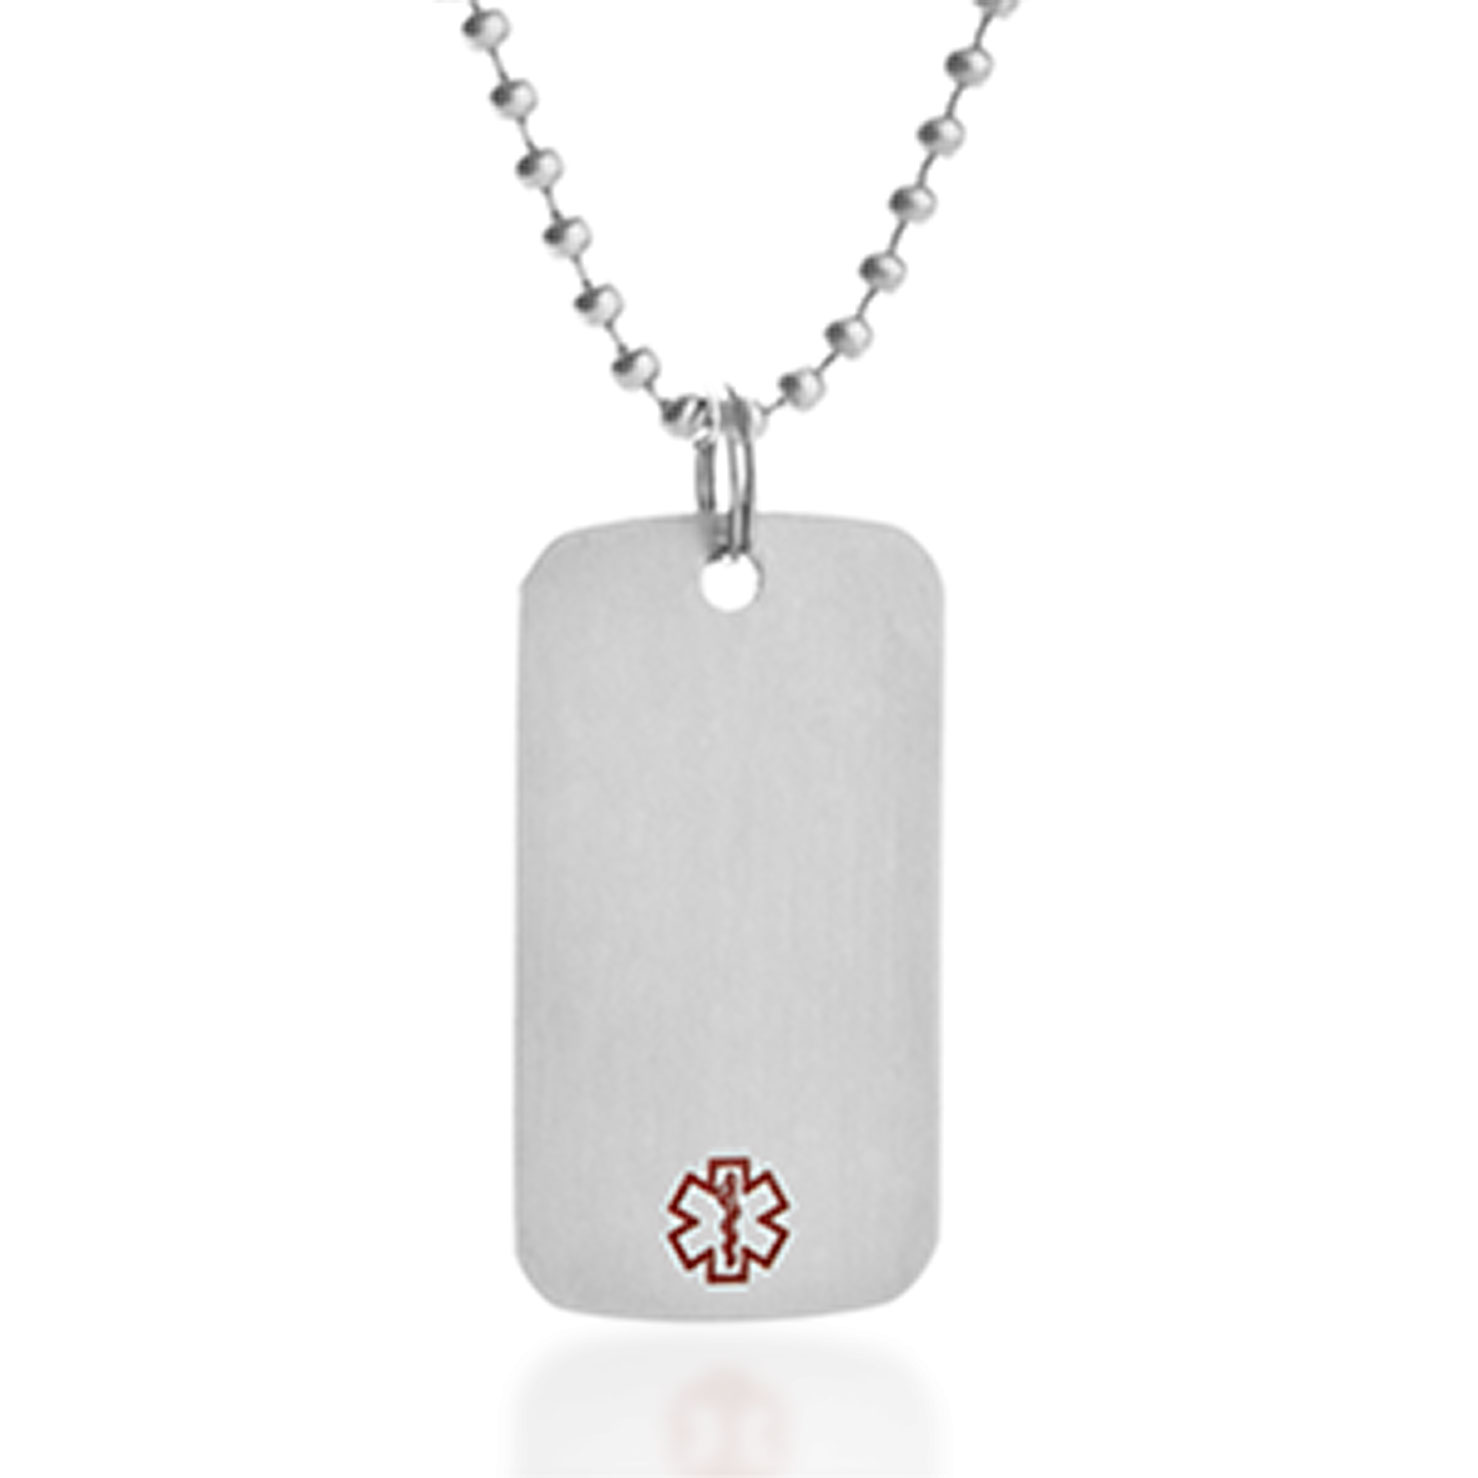 Medium Brushed Steel Medical Dog Tags